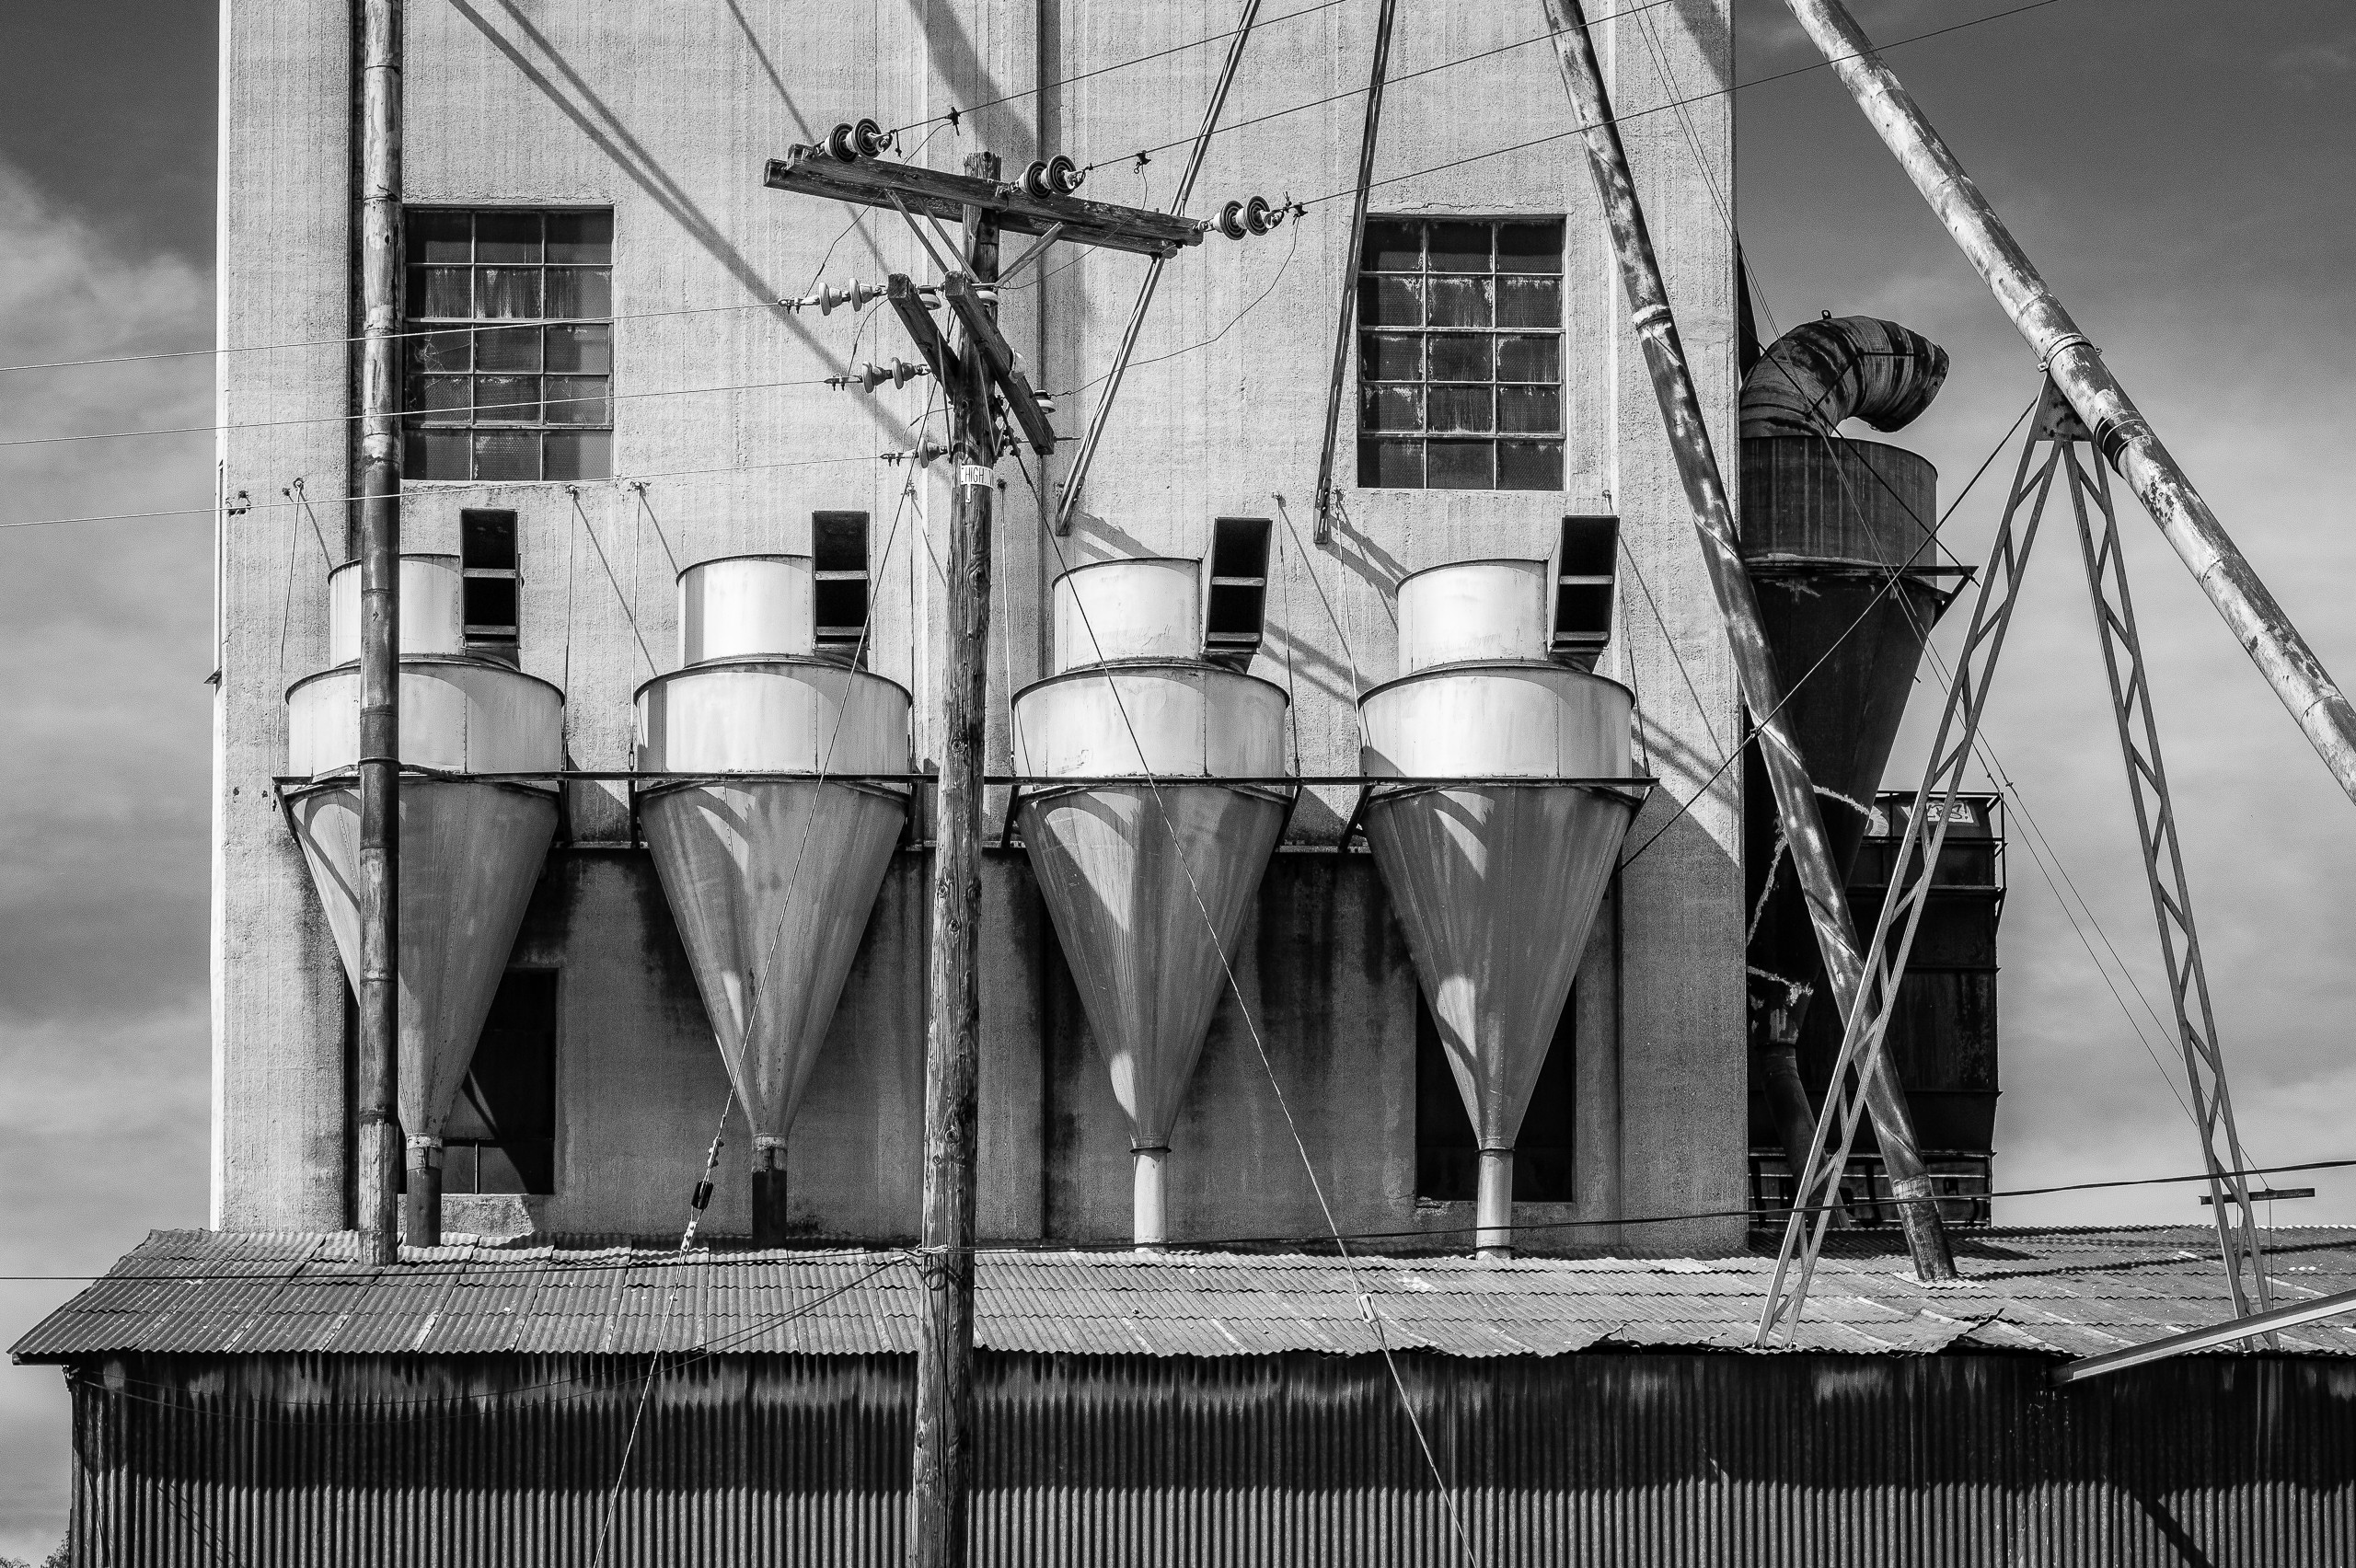 Conical Vents